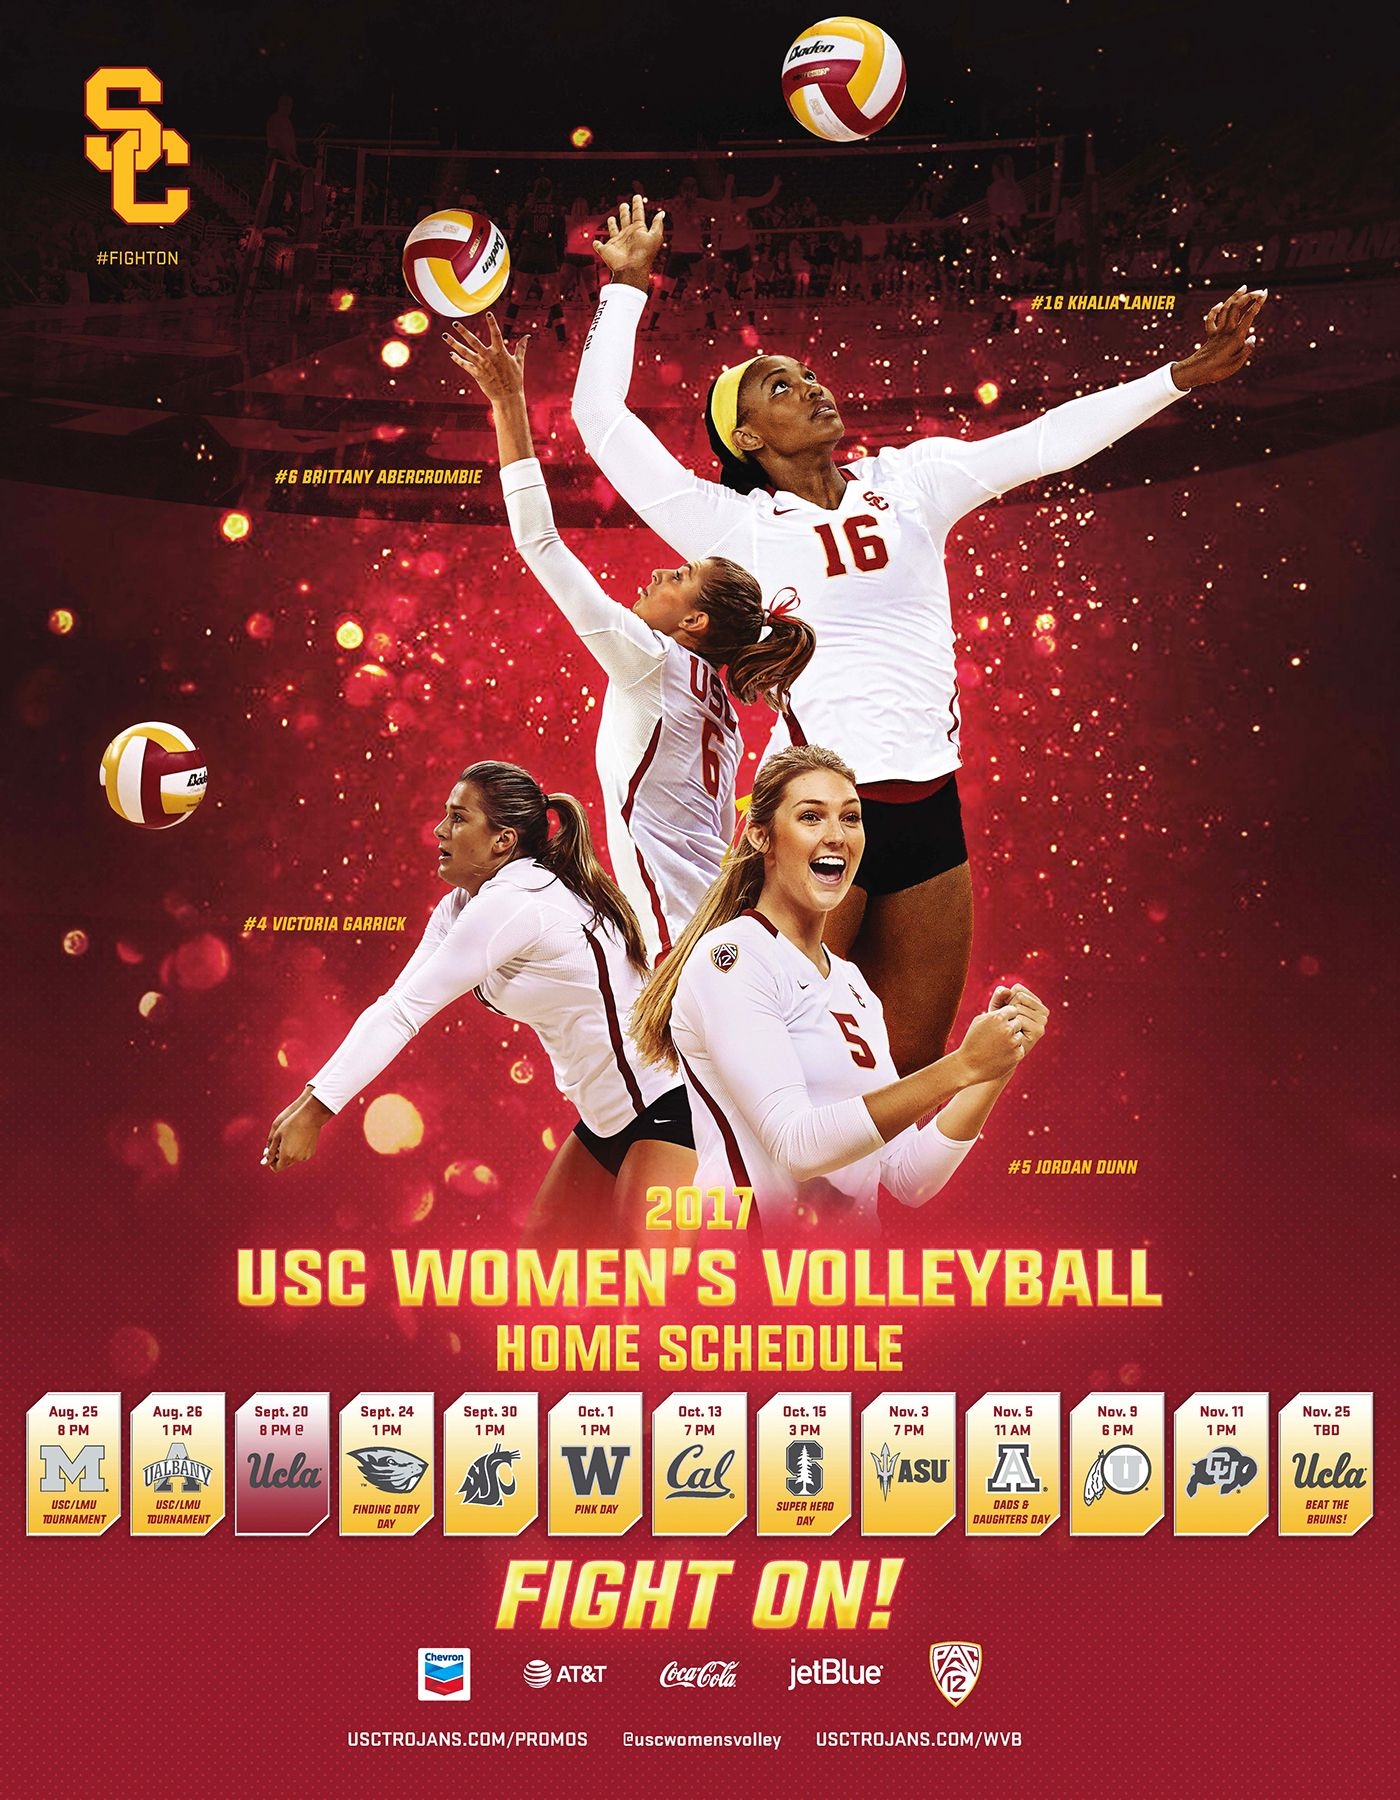 Victoria Garrick In 2020 Usc Athletics Volleyball Inspiration Usc